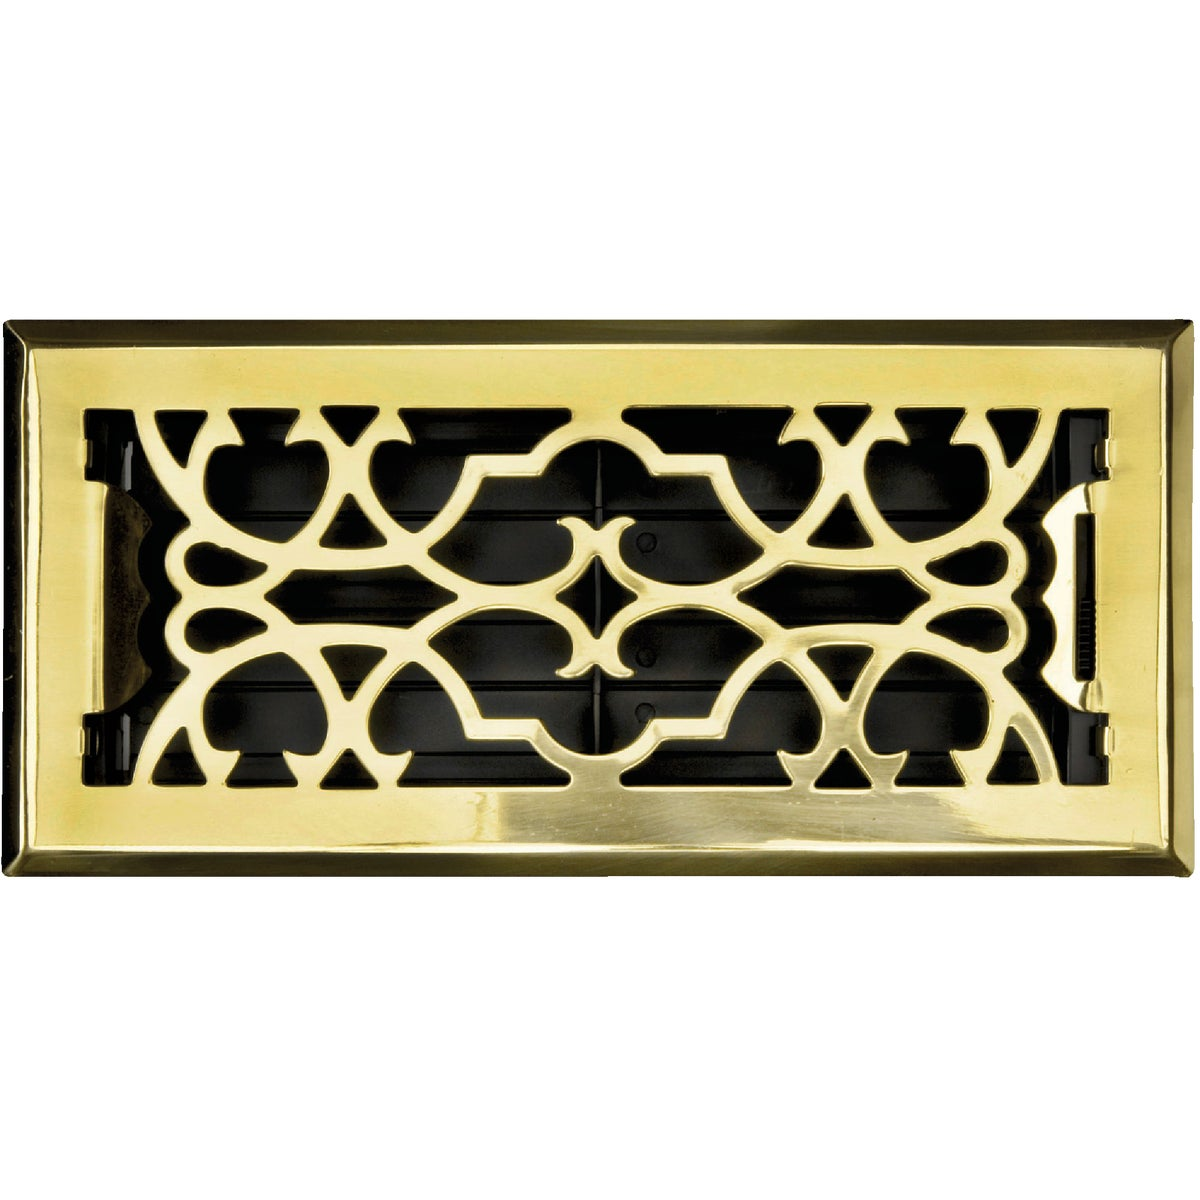 4X10 PBRASS FLR REGISTER - ASFRSBV410 by Greystone Home Prod